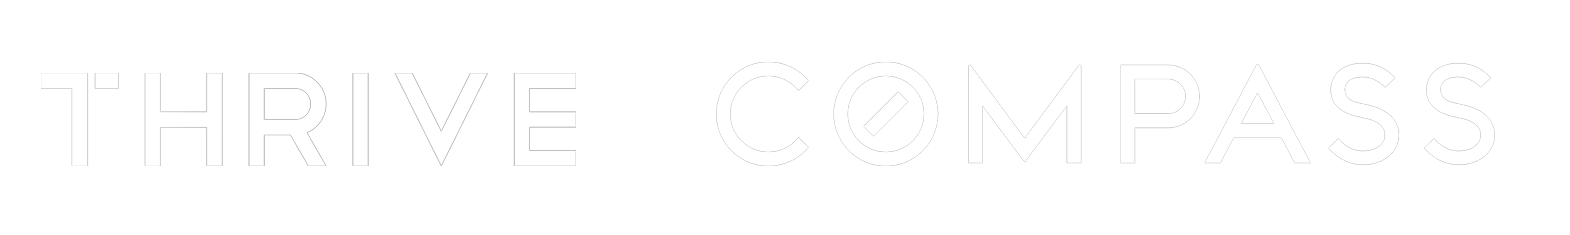 Thrive at Compass Logo WHITE.png